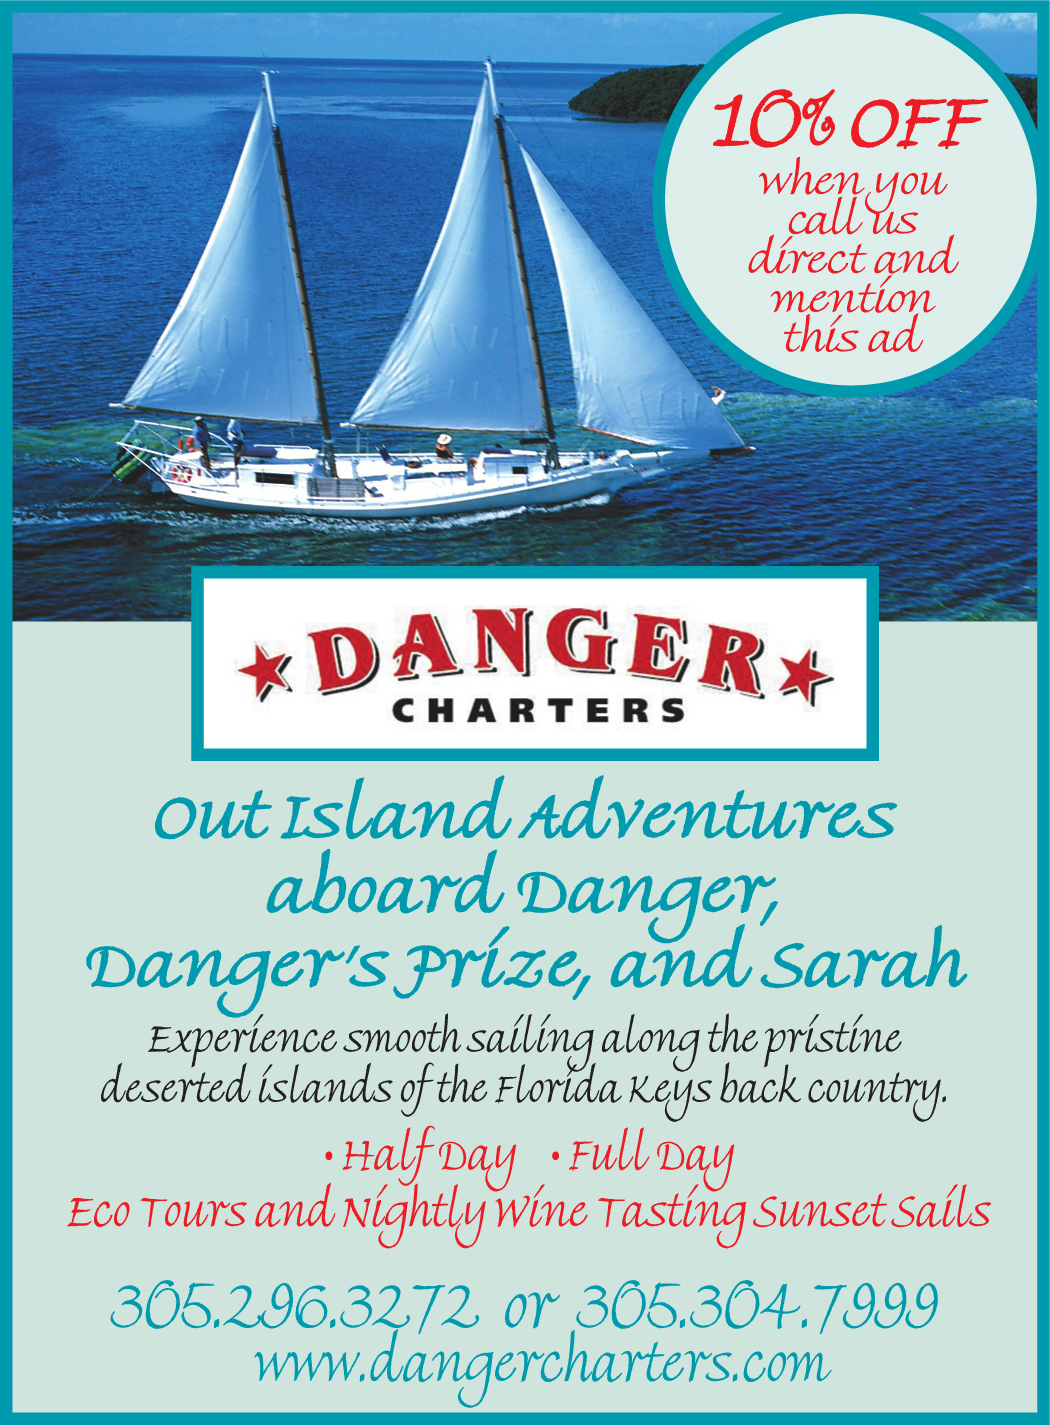 danger charters key west coupon